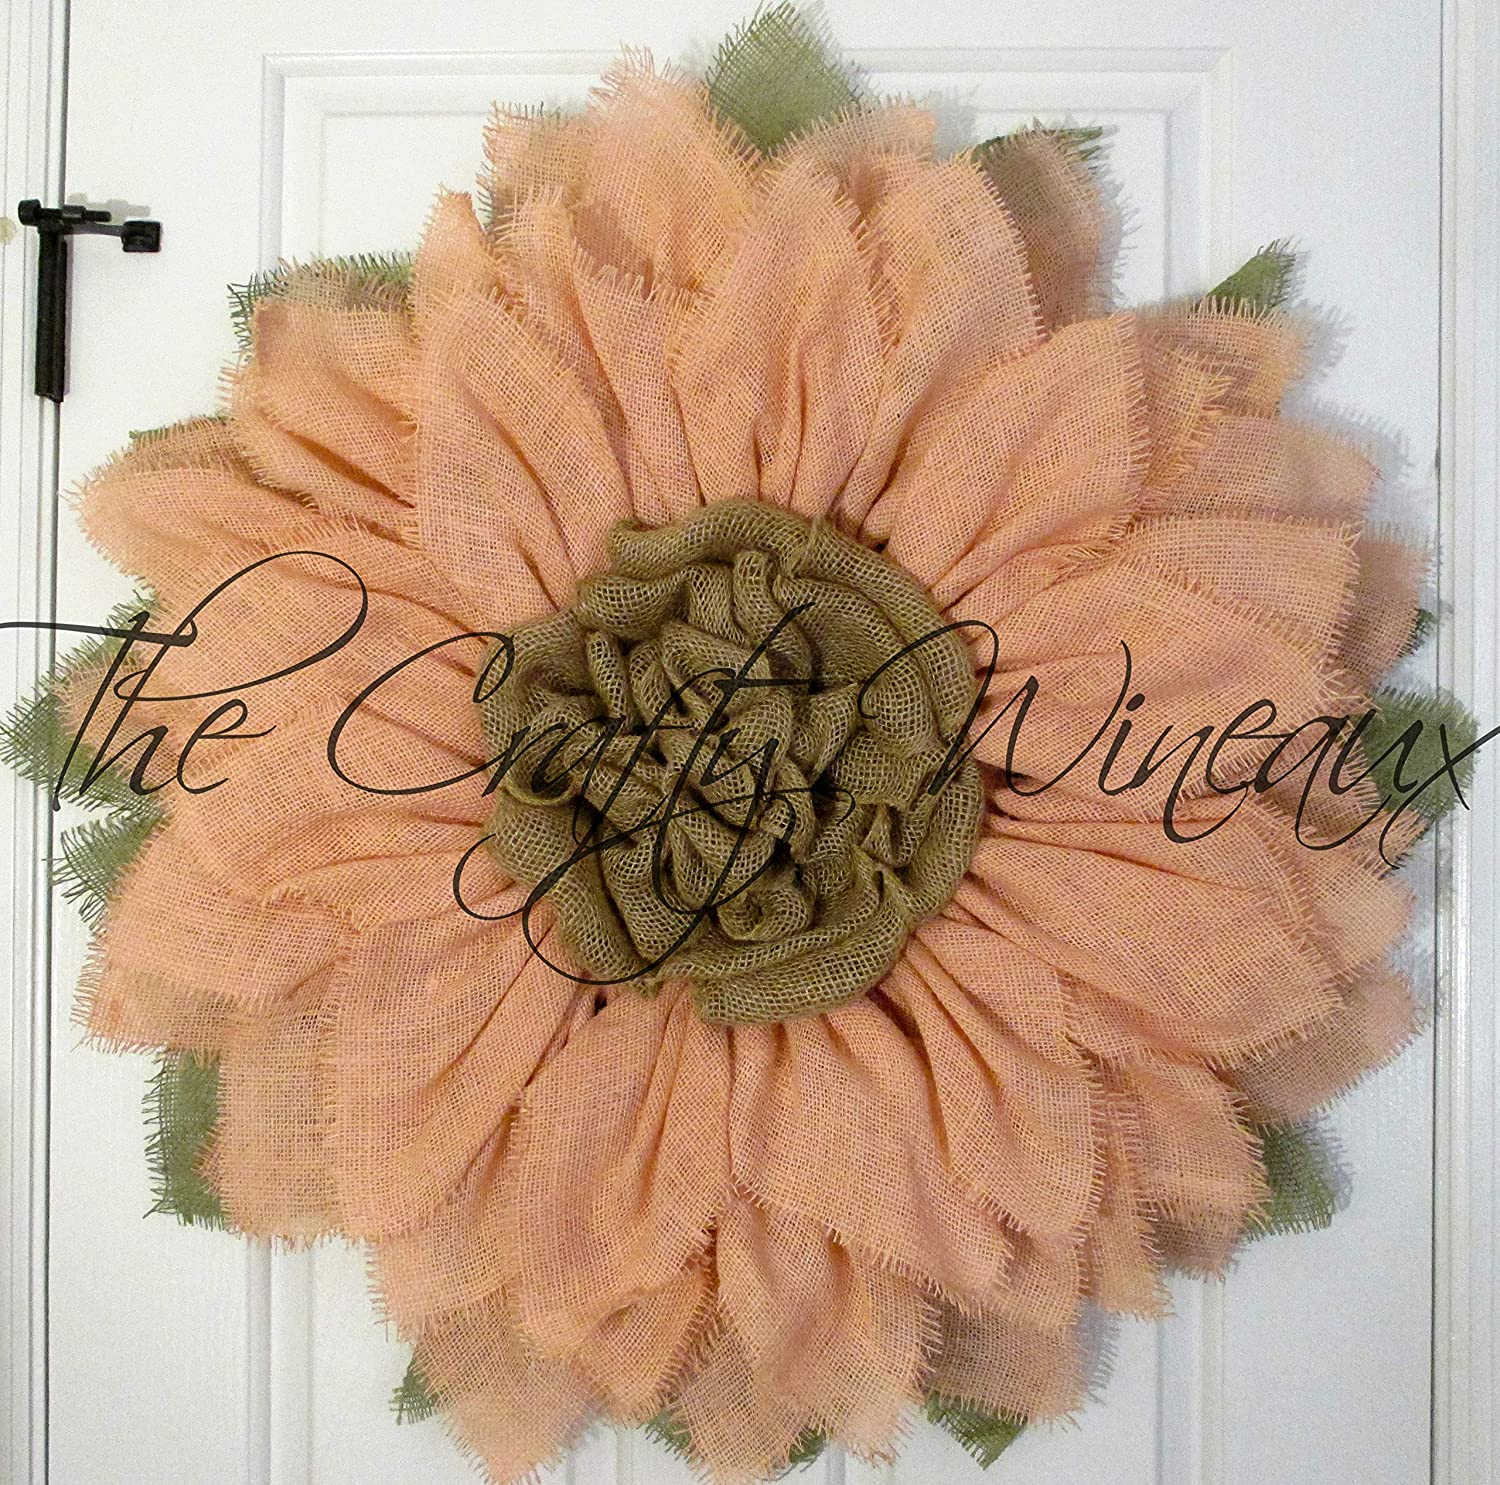 Extra Large 30 White Burlap Sunflower Wreath by The Crafty Wineaux/™